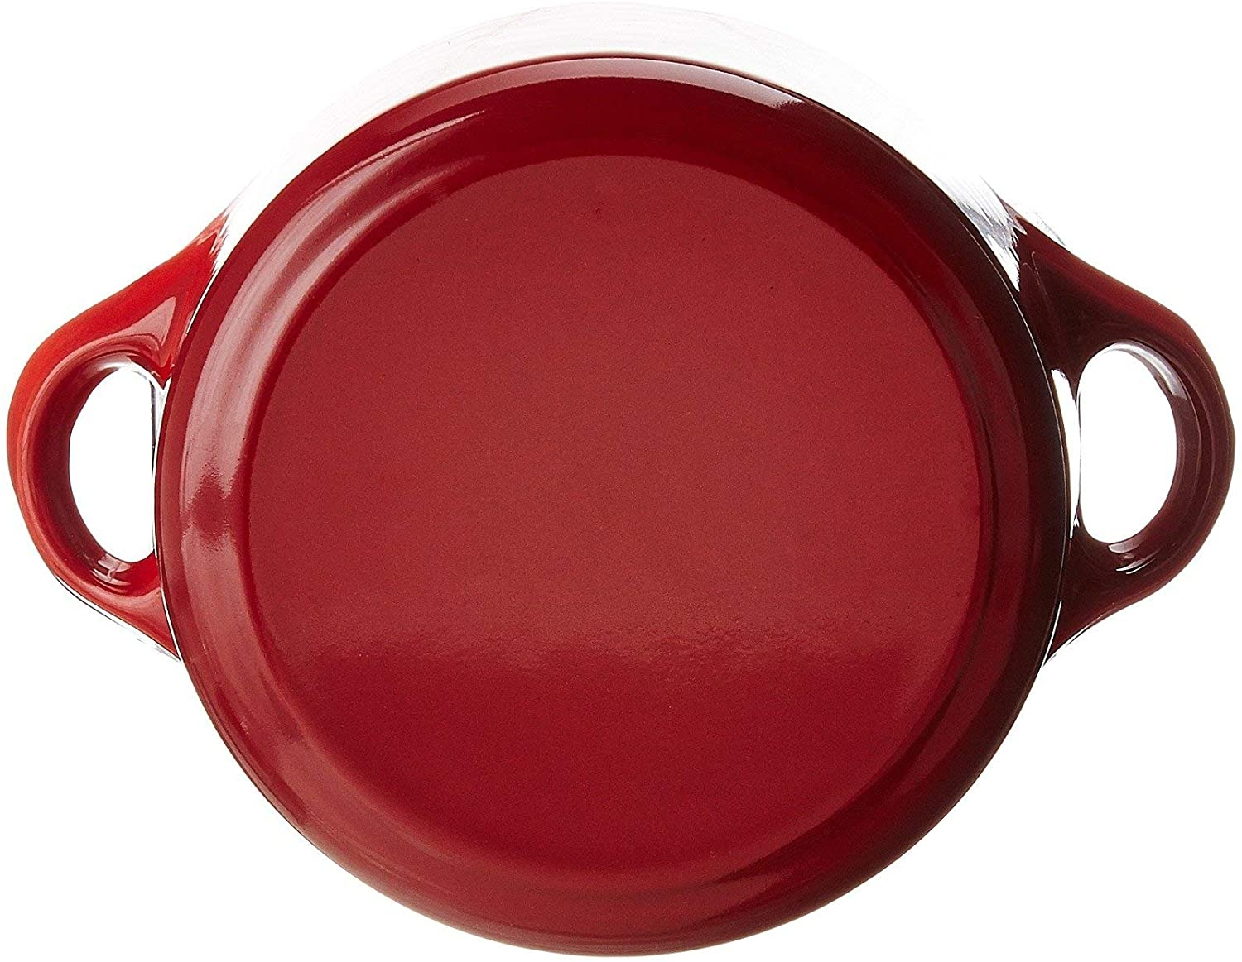 LE CREUSET(ル・クルーゼ) ミニココットの商品画像2